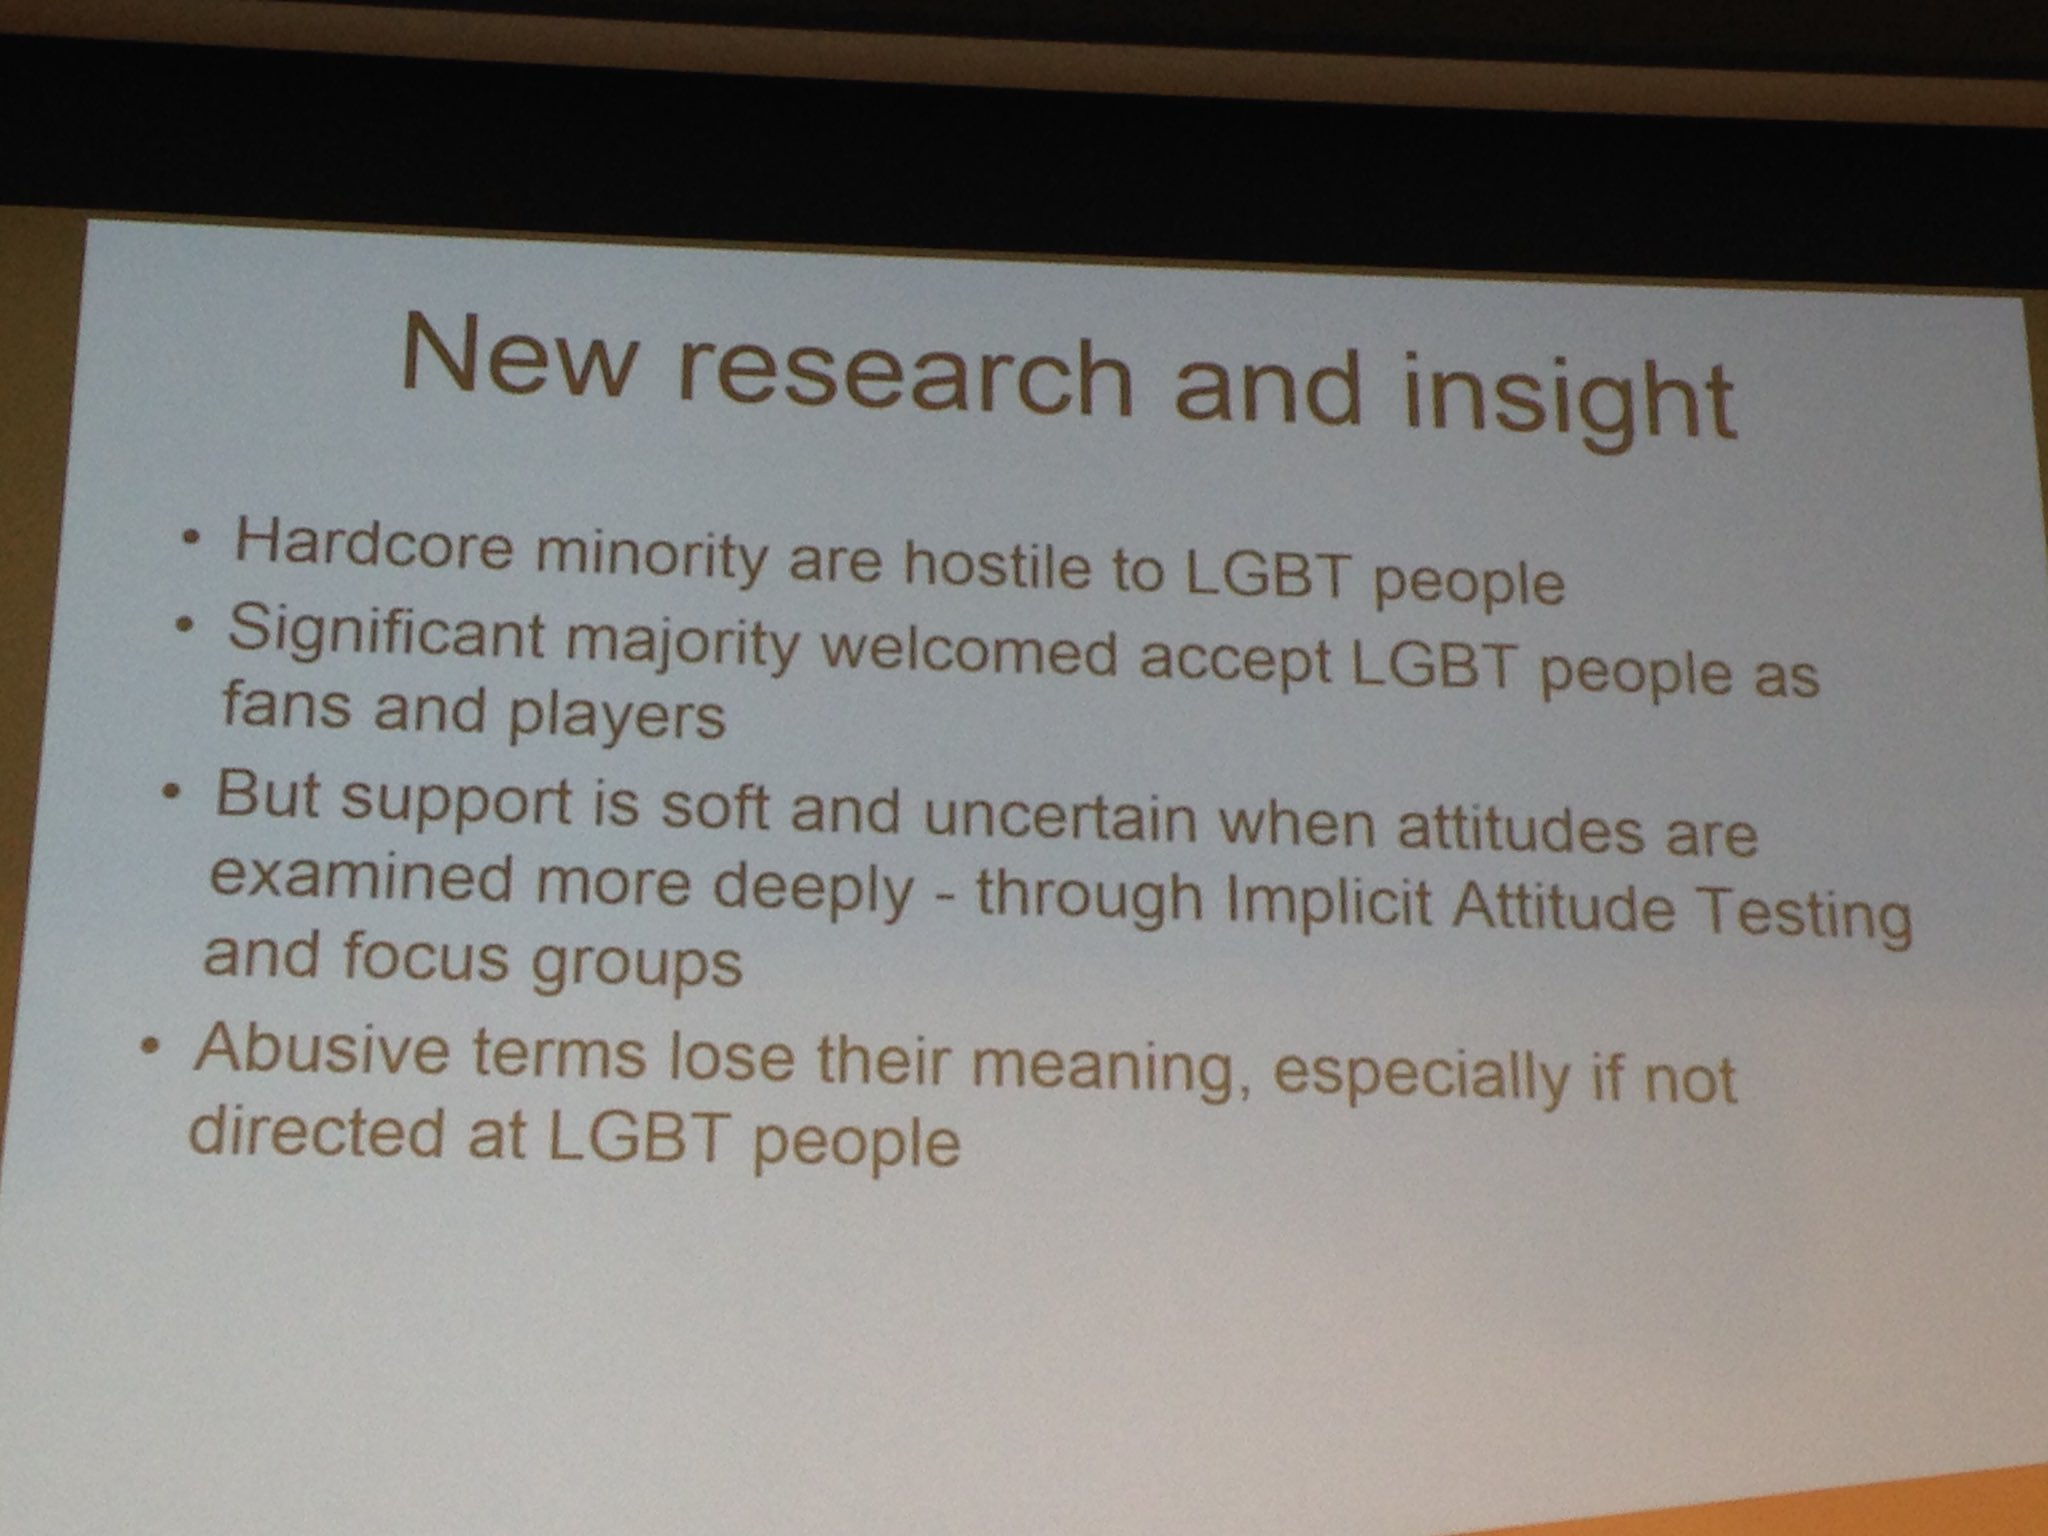 Research & evidence key to @stonewalluk campaign to change attitudes in sport #CCfilterbubble https://t.co/YXmbQSk5xj